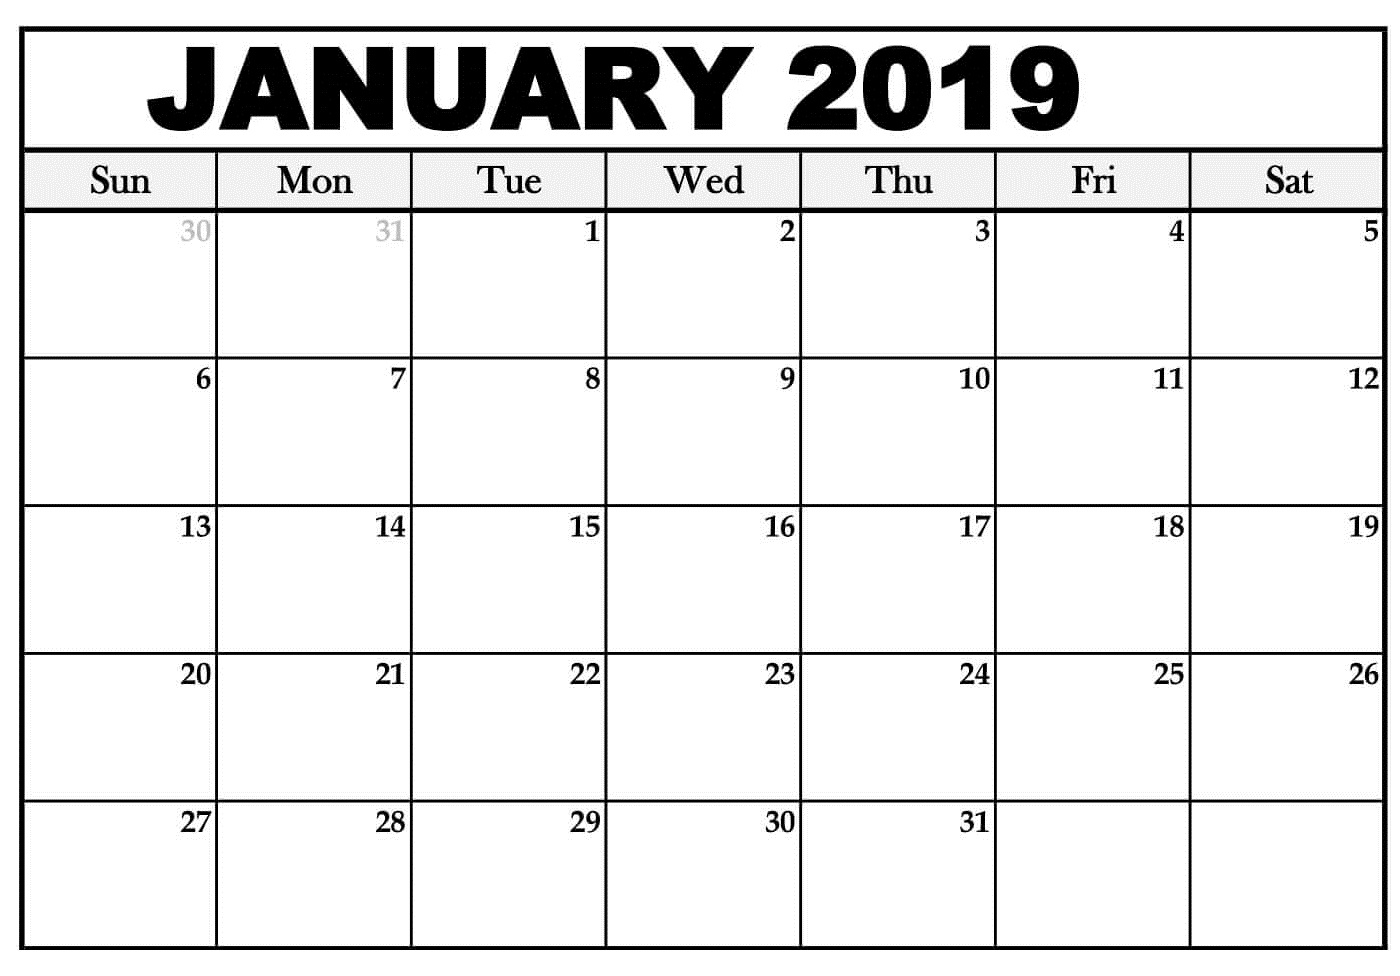 January 2019 Calendar Printable Schedule